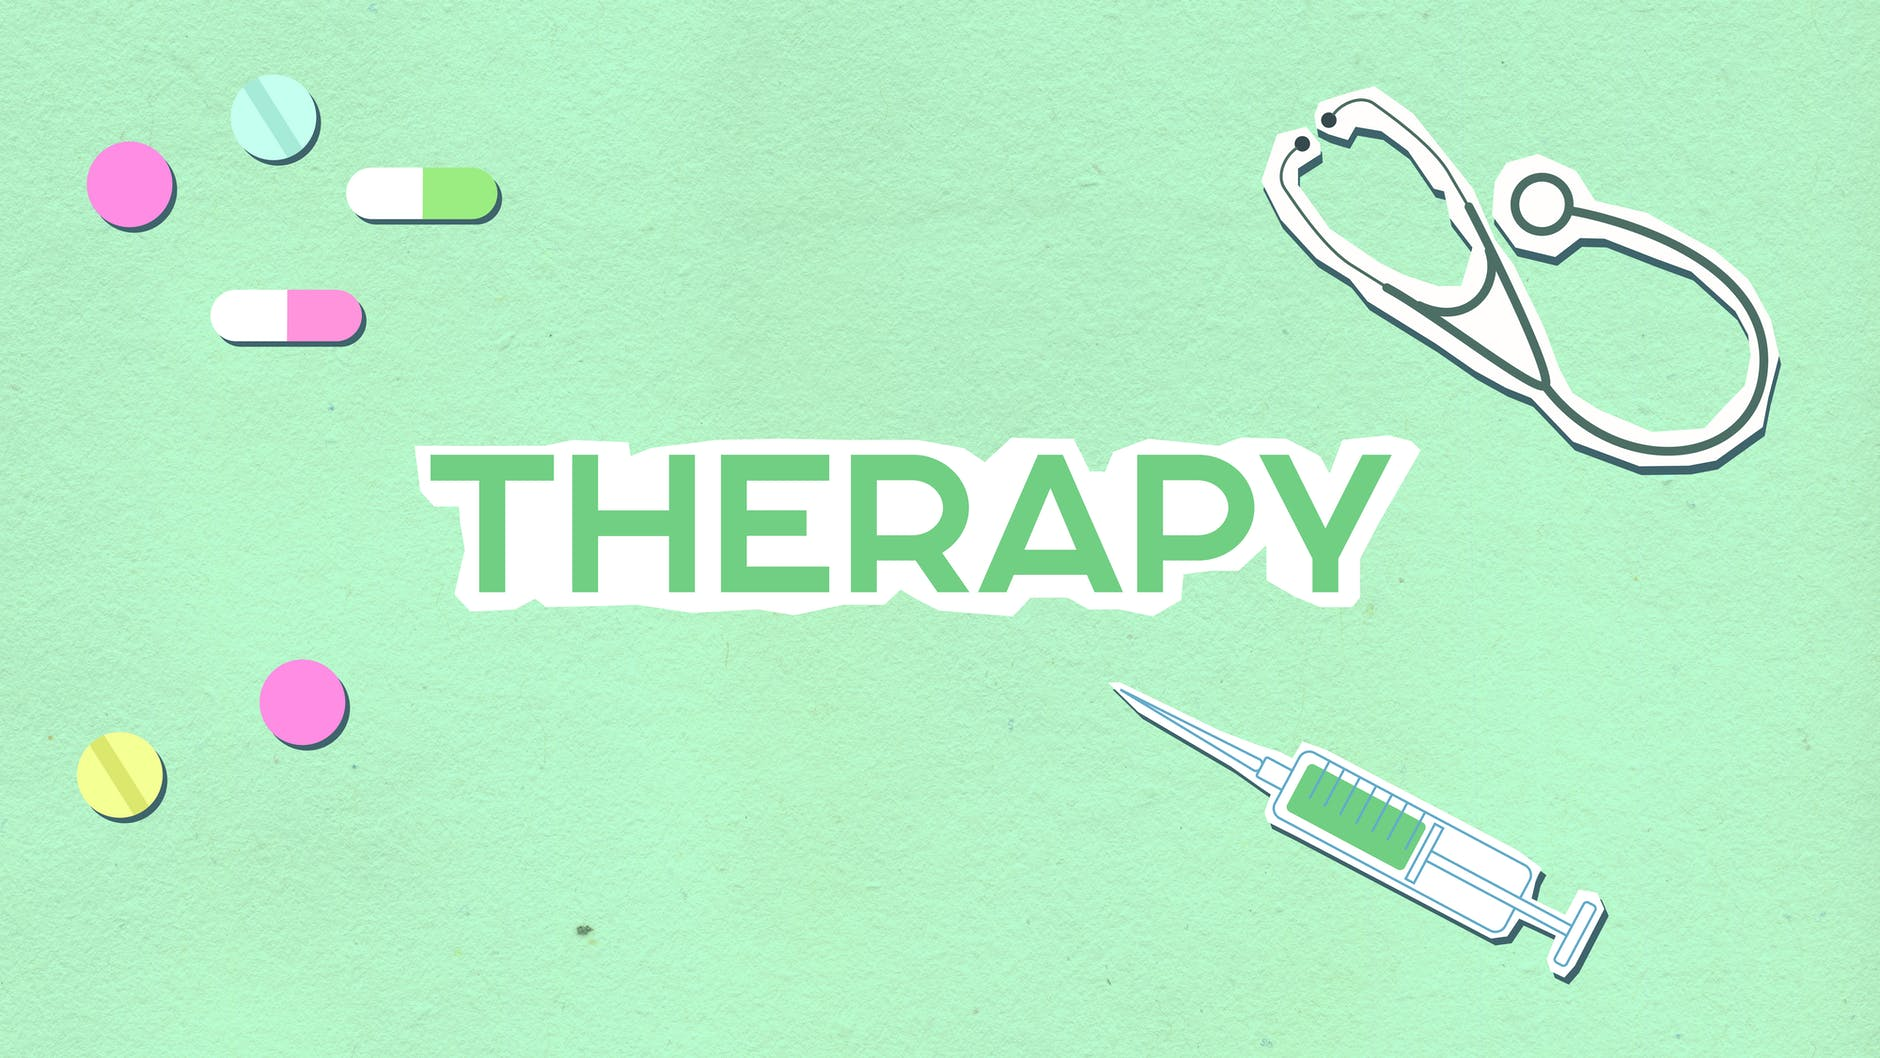 cutout paper illustration of therapy title among medications and tools